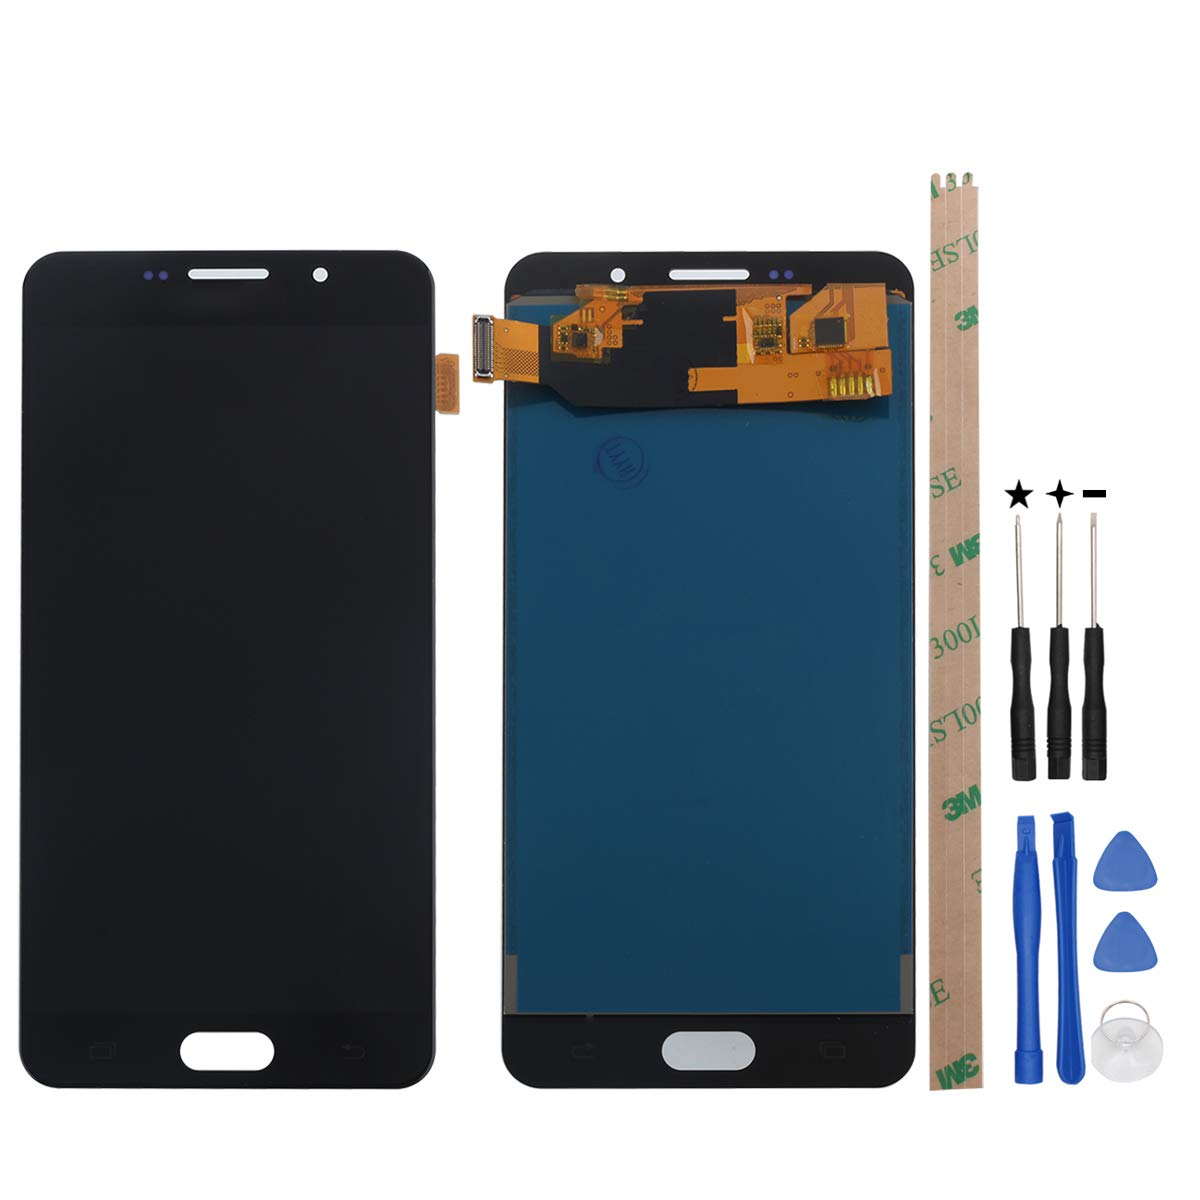 Repuesto Lcd Touch Screen Para Galaxy A7 2016 A710 A710f